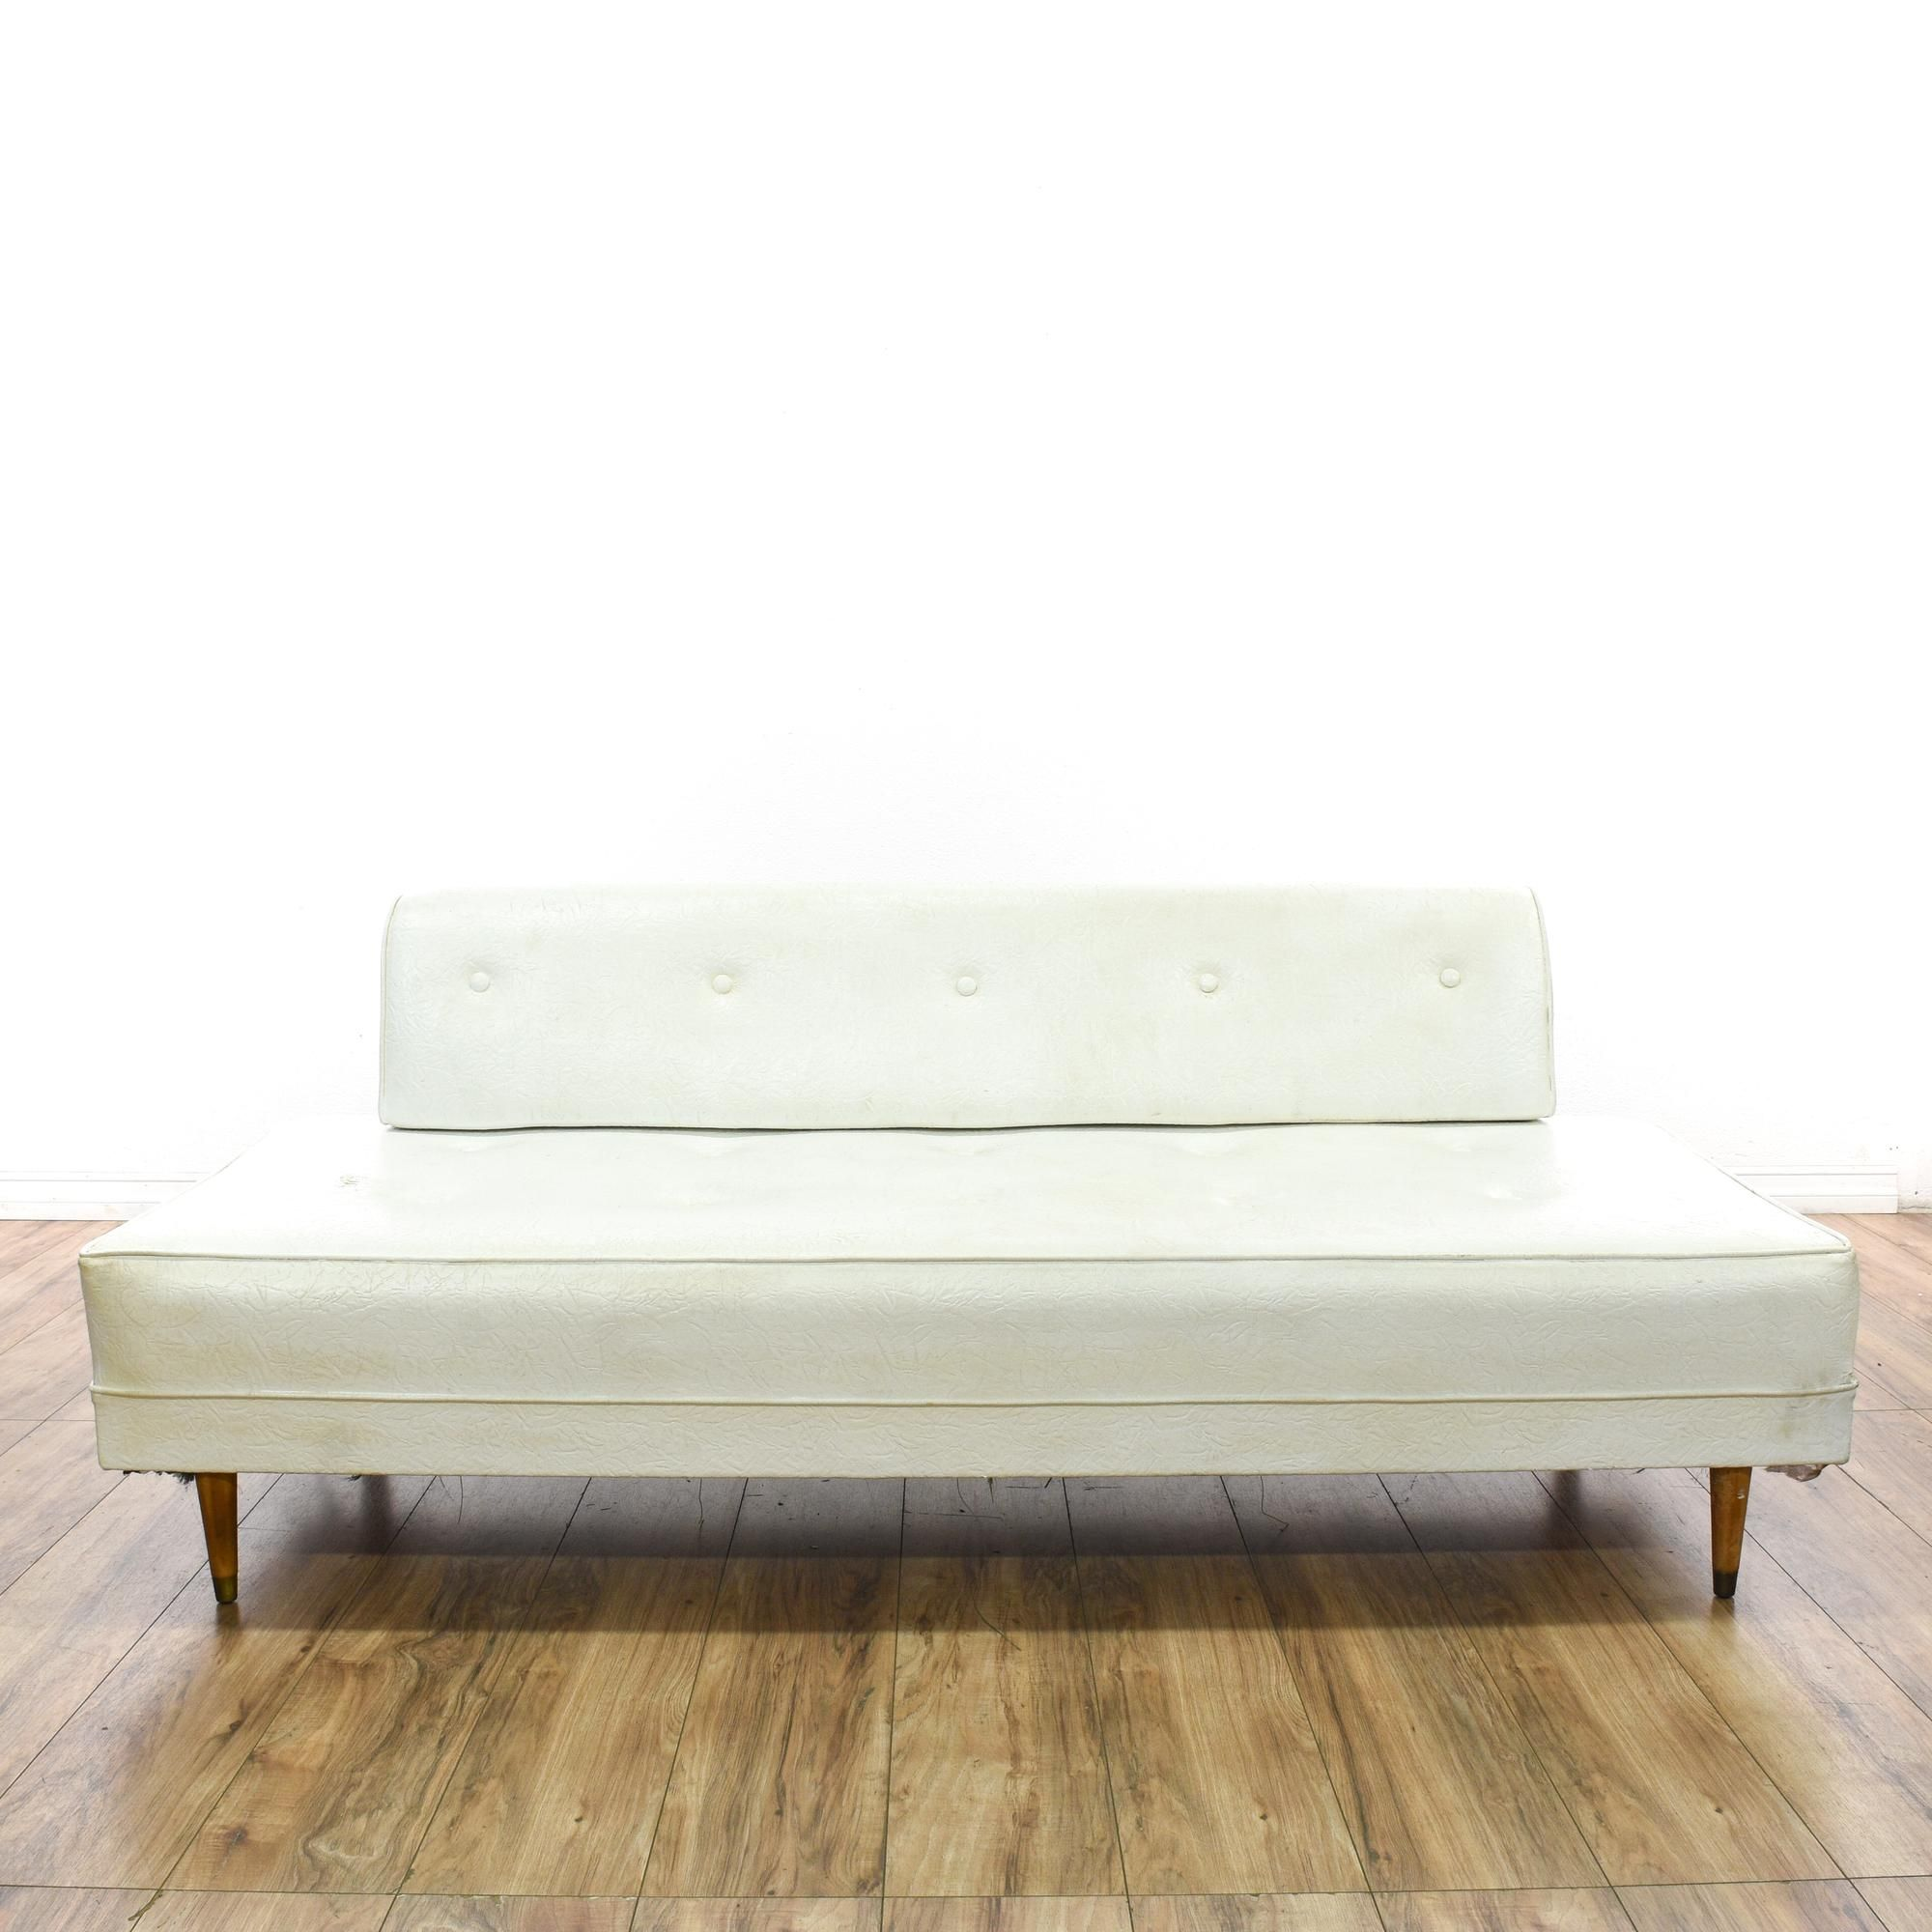 This Mid Century Modern Daybed Sofa Is Upholstered In A Durable Vinyl With A White Faux Leather Finish This Bench Loveseat Ha Daybed Sofa White Sofas Sofa Bed